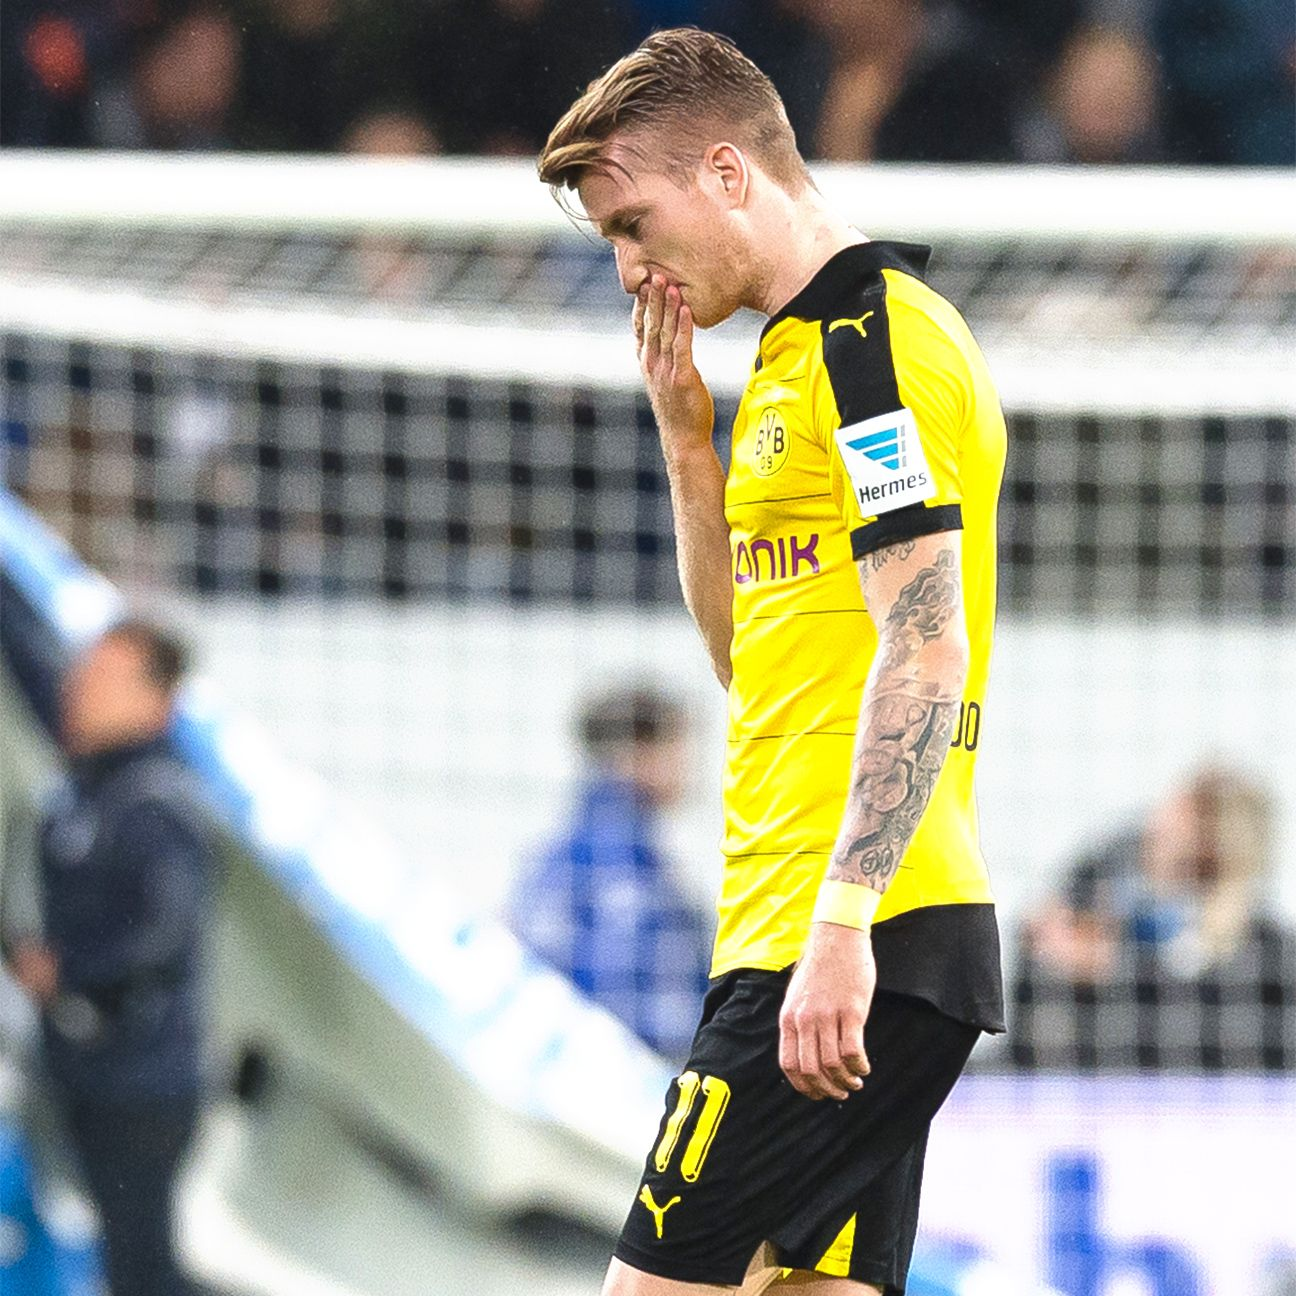 Marco Reus struggled for Dortmund in his first match since late August.